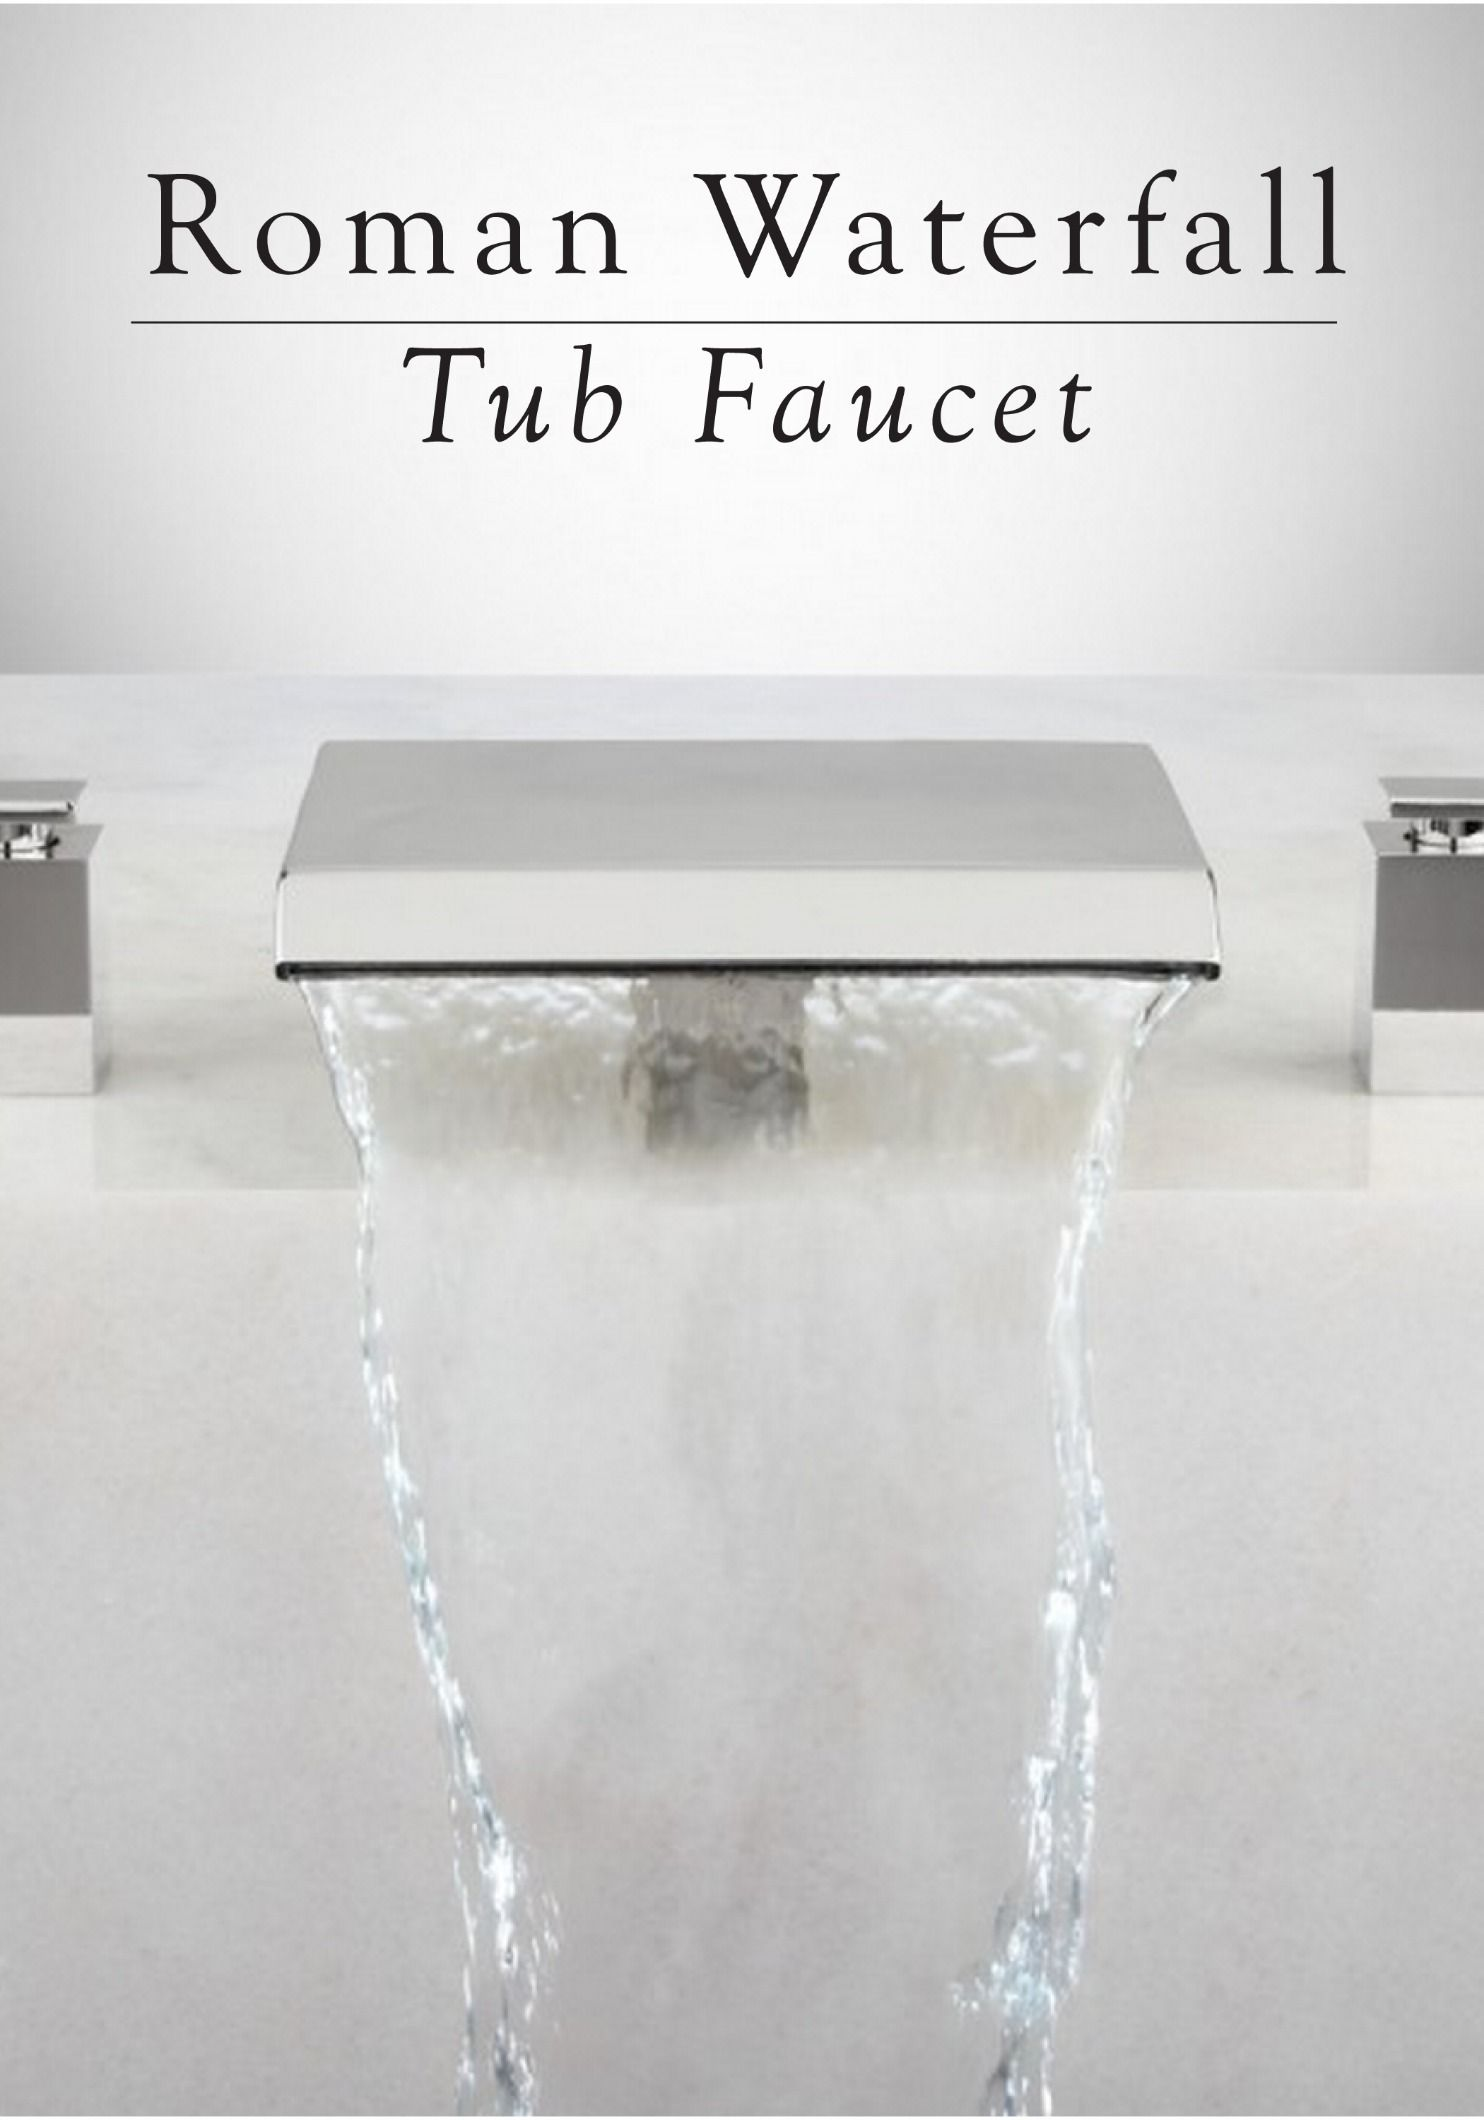 Lavelle Waterfall Roman Tub Faucet | Master bathrooms, Faucet and Tubs